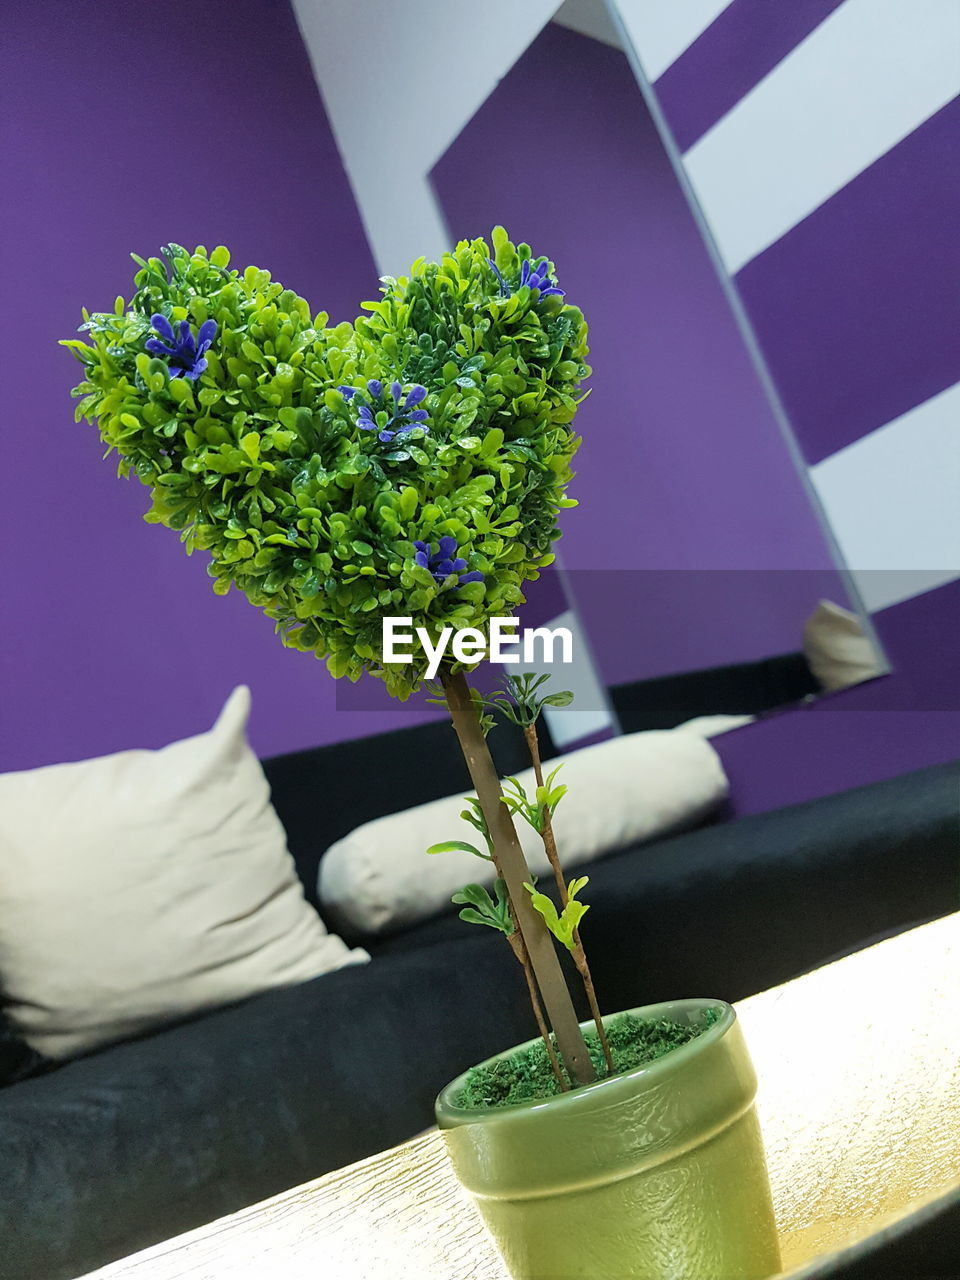 plant, flower, nature, growth, green color, close-up, flowering plant, indoors, freshness, vase, beauty in nature, potted plant, day, no people, table, plant part, leaf, focus on foreground, sunlight, flower arrangement, flower pot, flower head, houseplant, bunch of flowers